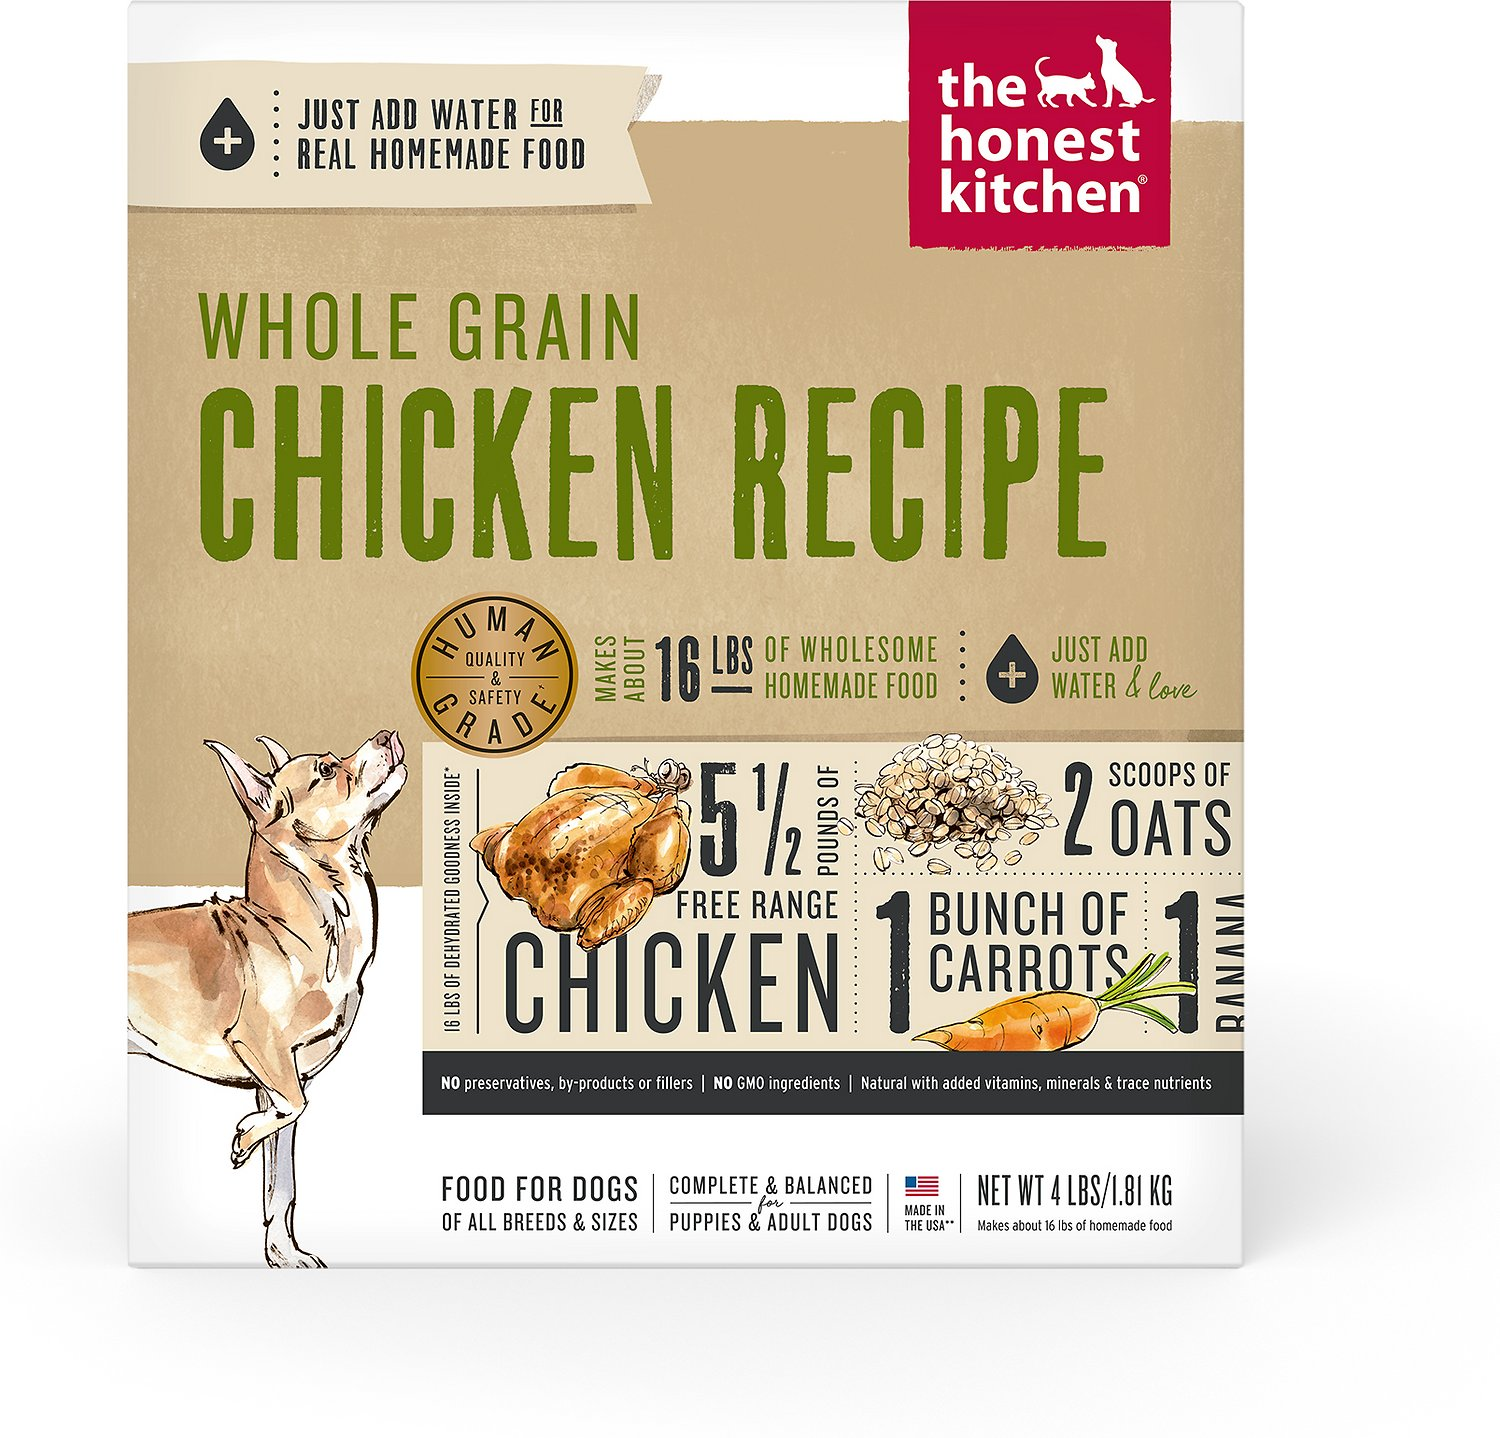 The Honest Kitchen Whole Grain Chicken Recipe Dehydrated Dog Food 4 Lb Box